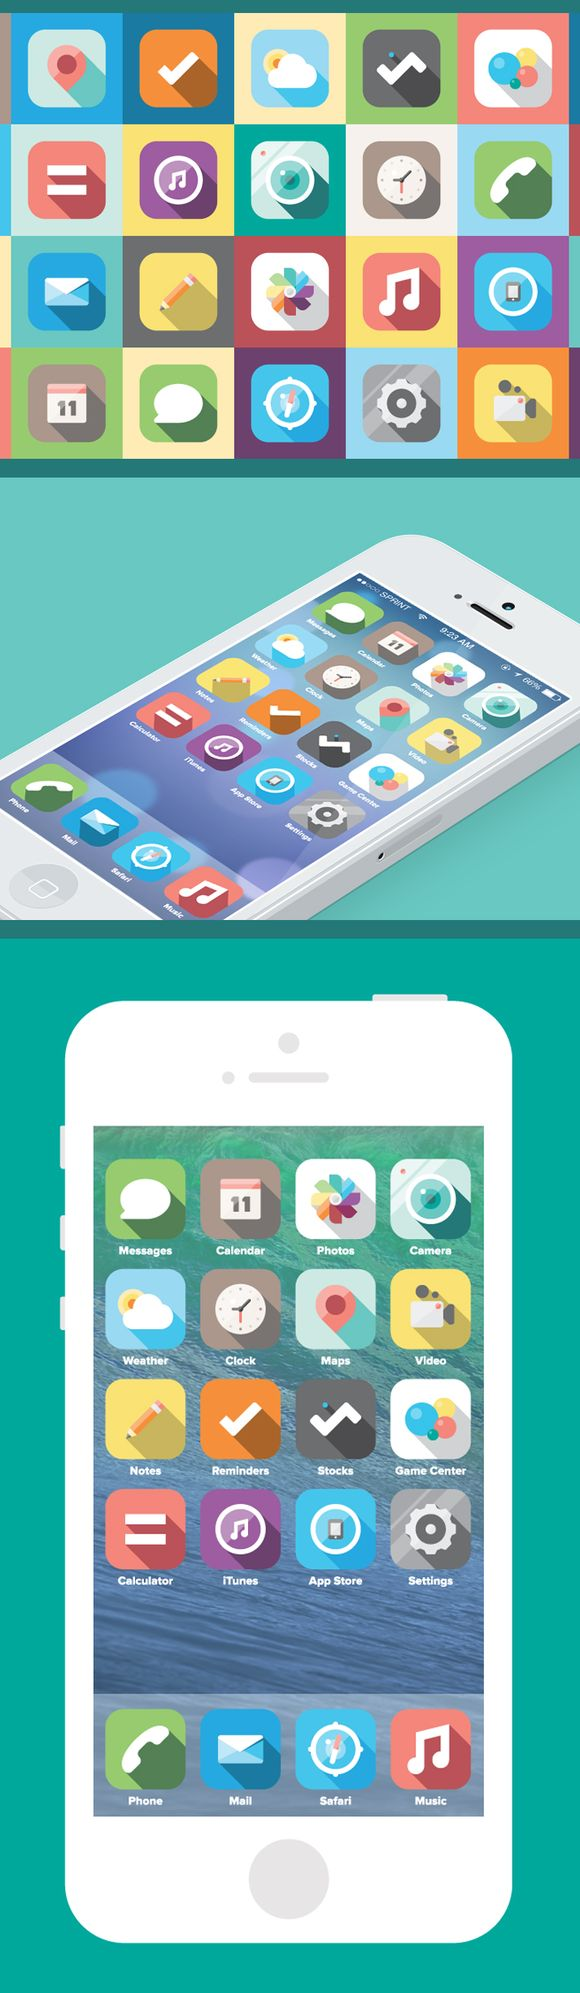 ios7 icon design / flat with heavy shadow